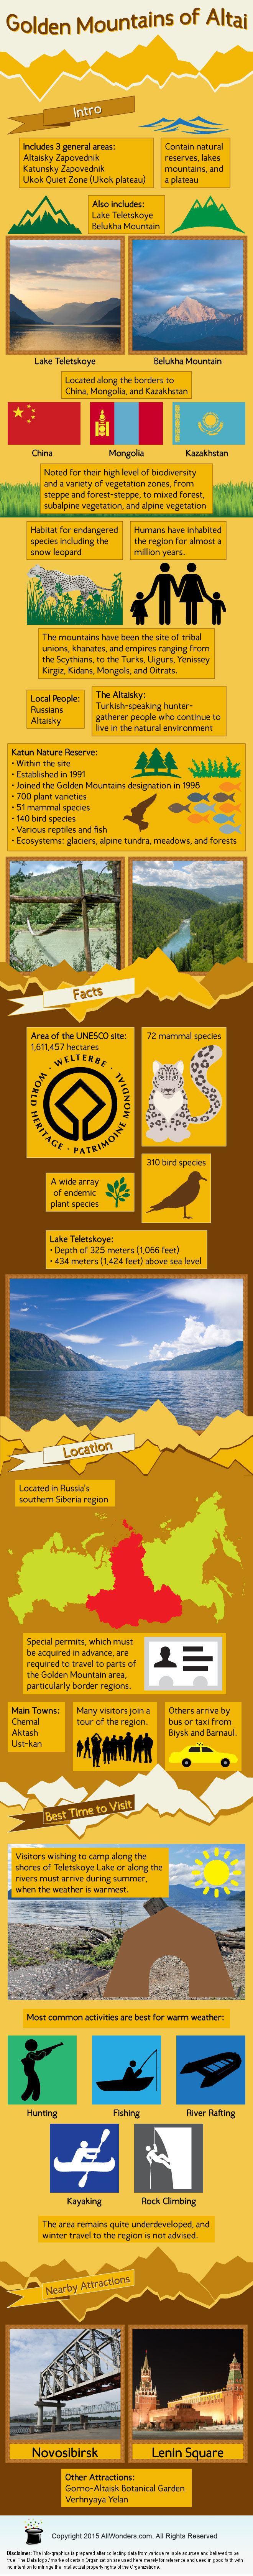 Golden Mountains of Altai - Travel Infographic